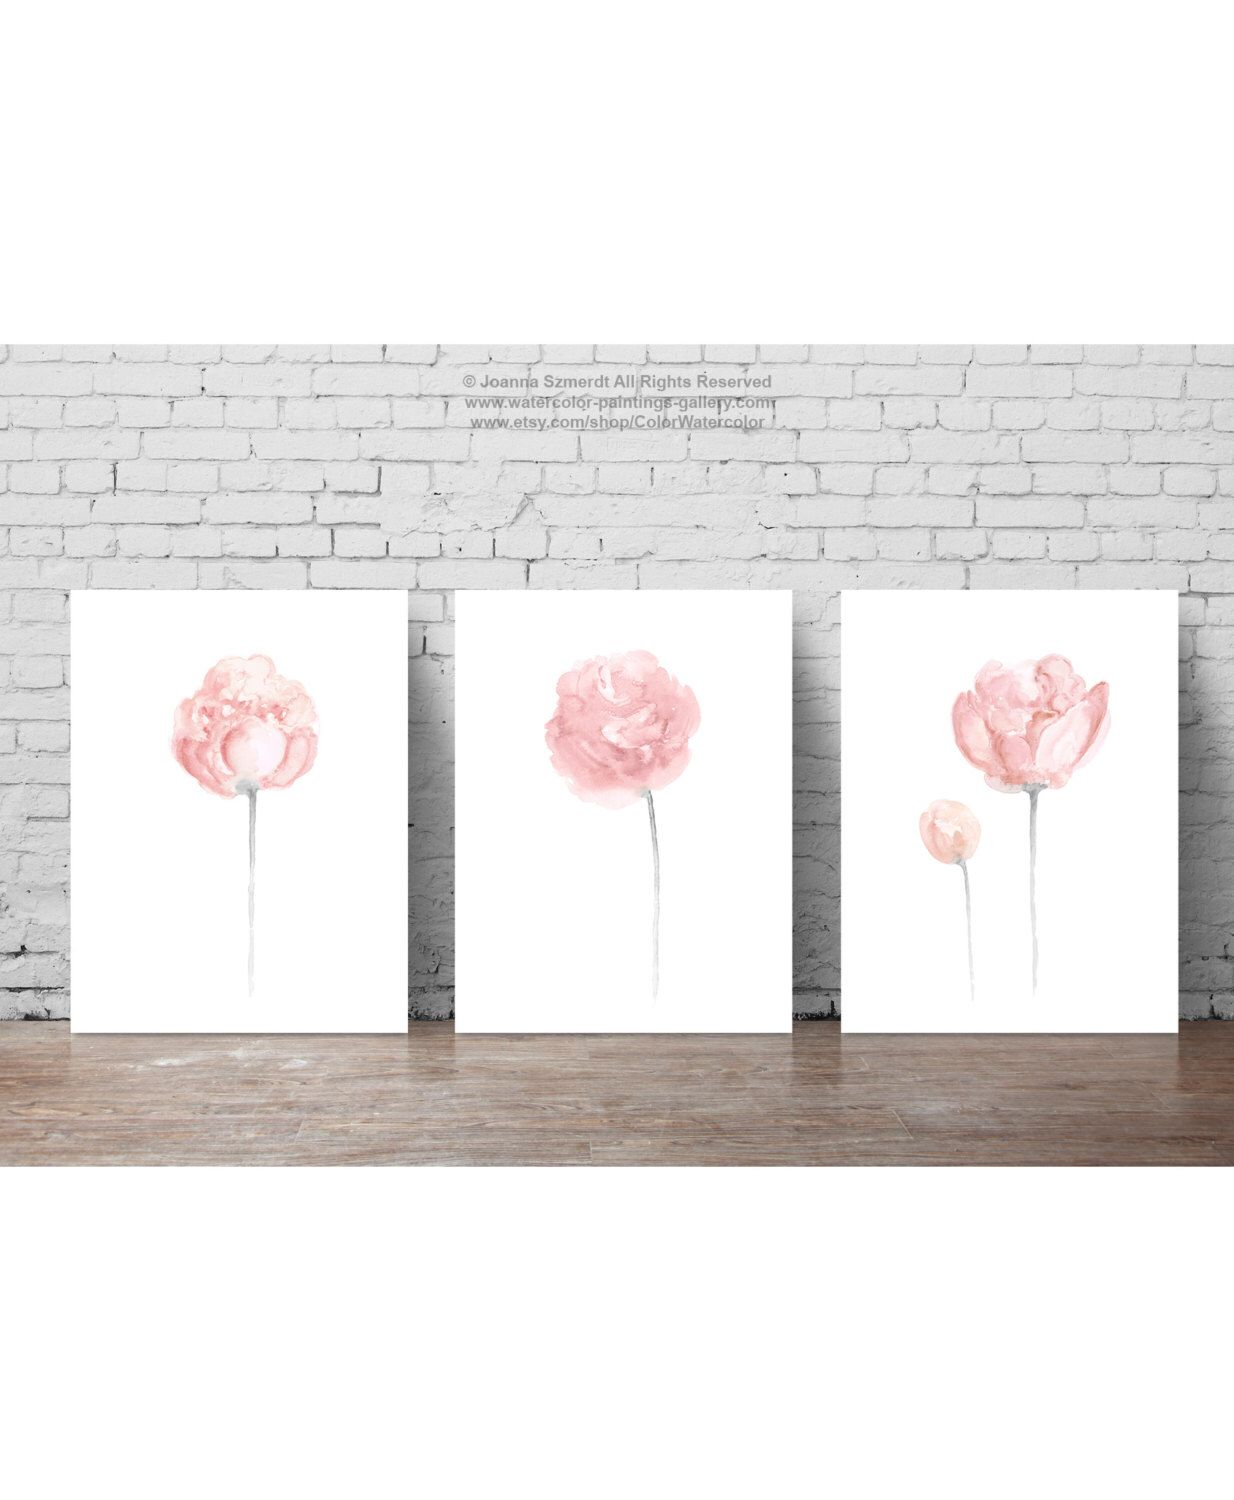 Shabby chic wall decor nursery - Shabby Chic Painting Baby Pink Nursery Wall Decor Gray Coral Living Room Decoration Floral Bedroom Watercolor